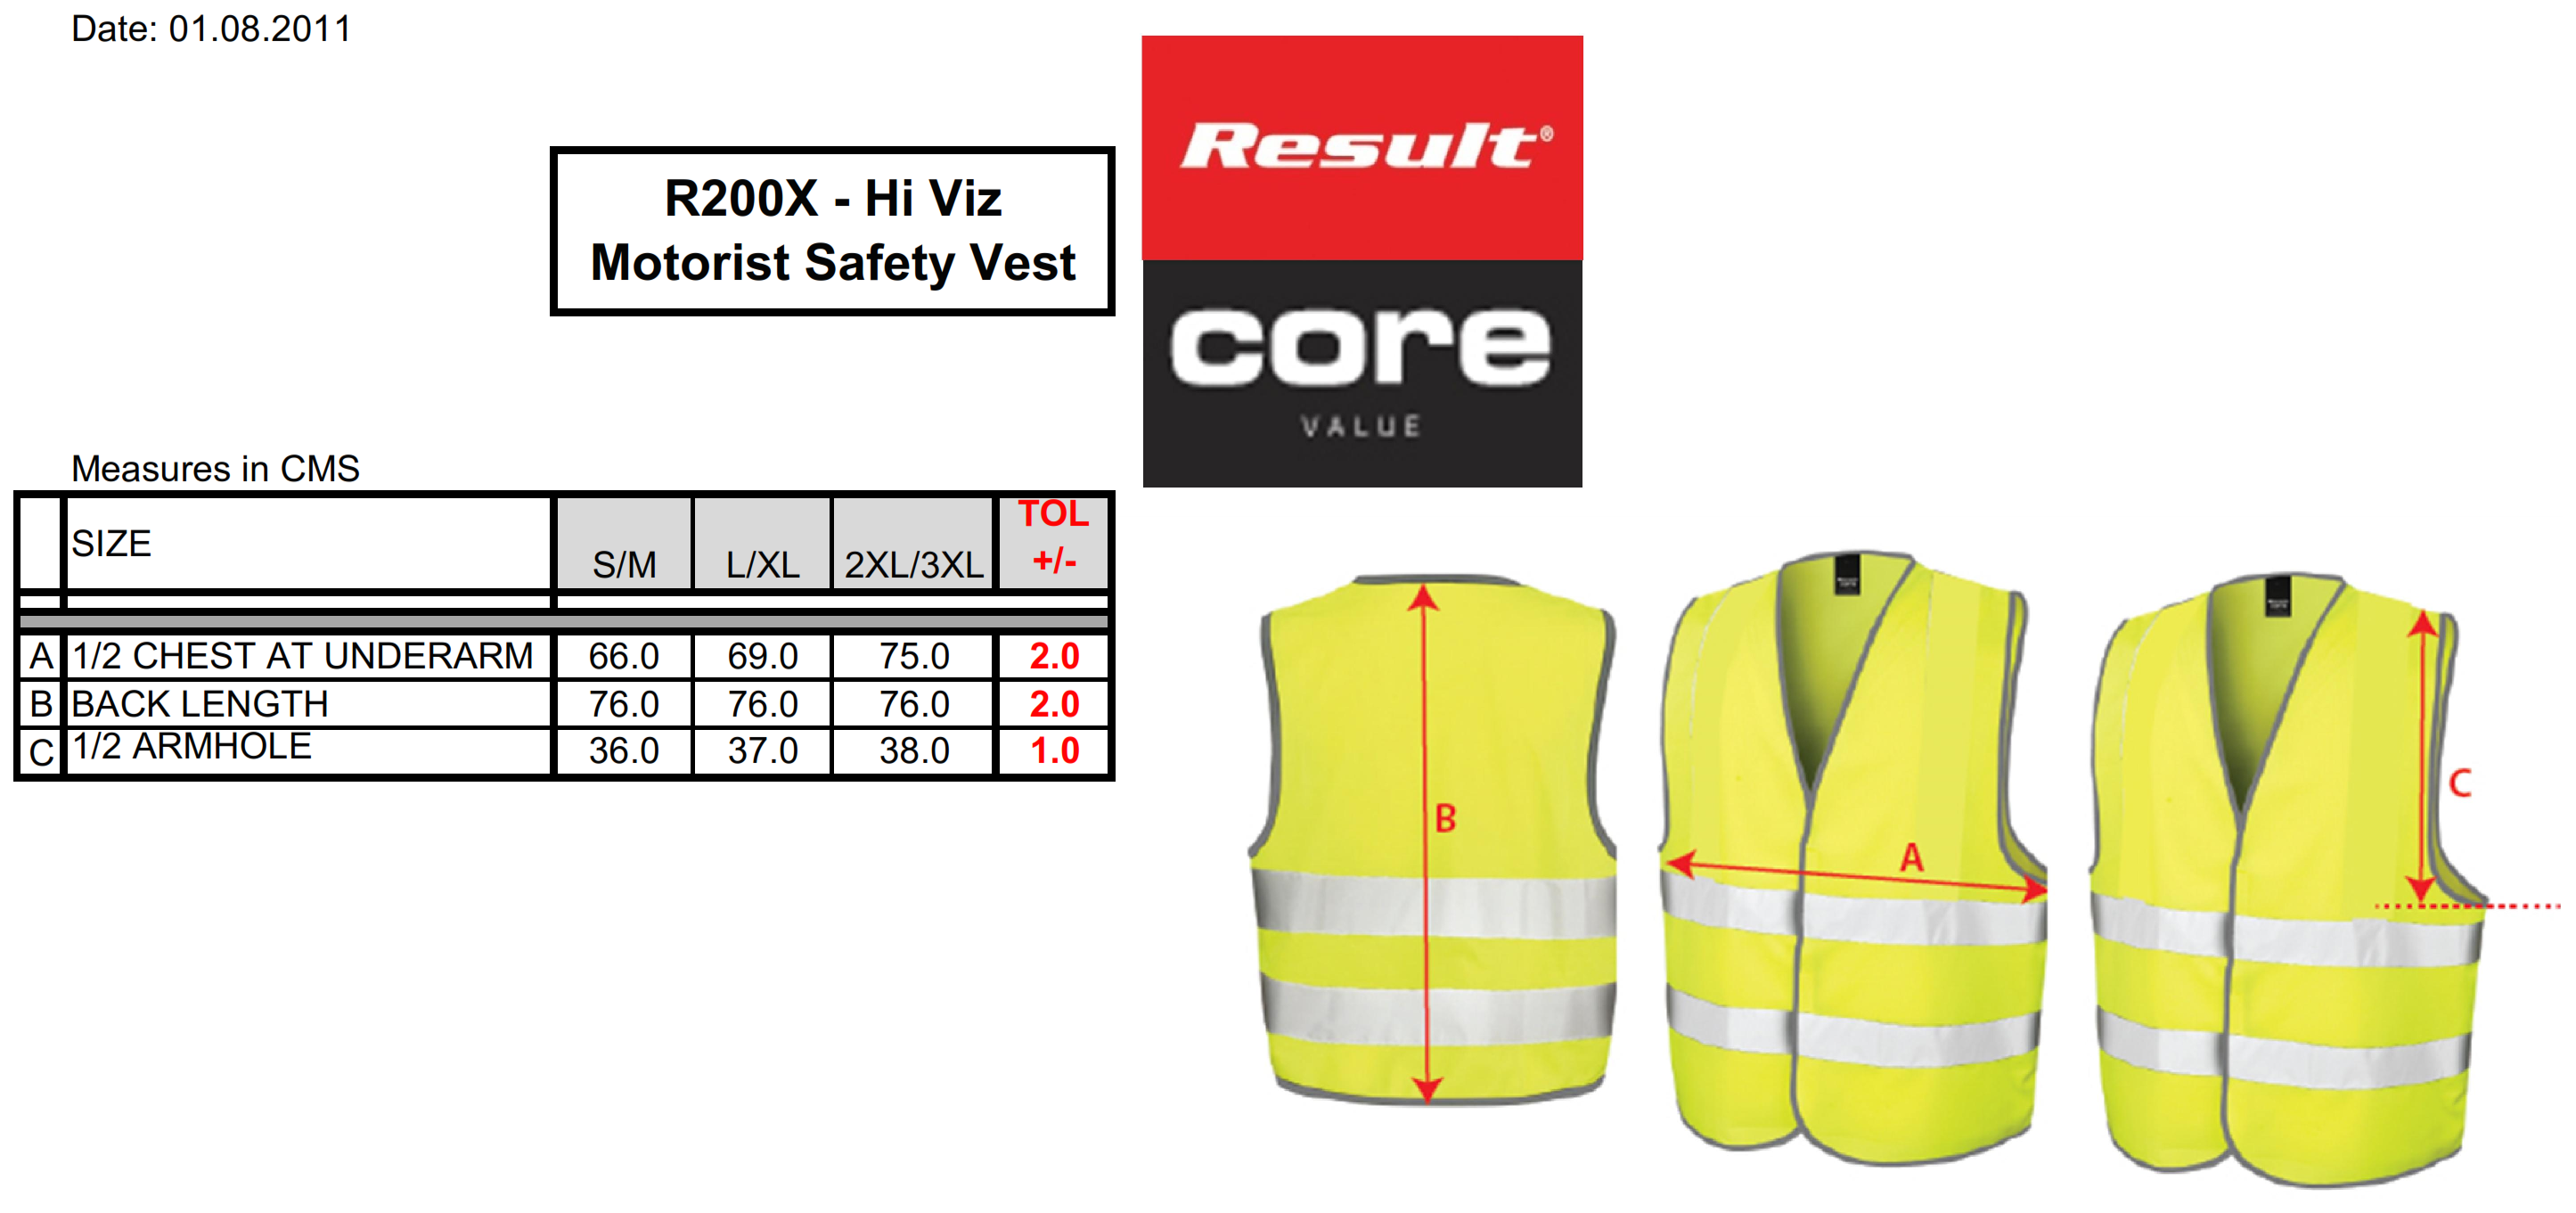 Result: Core Motorist Safety Vest R200X